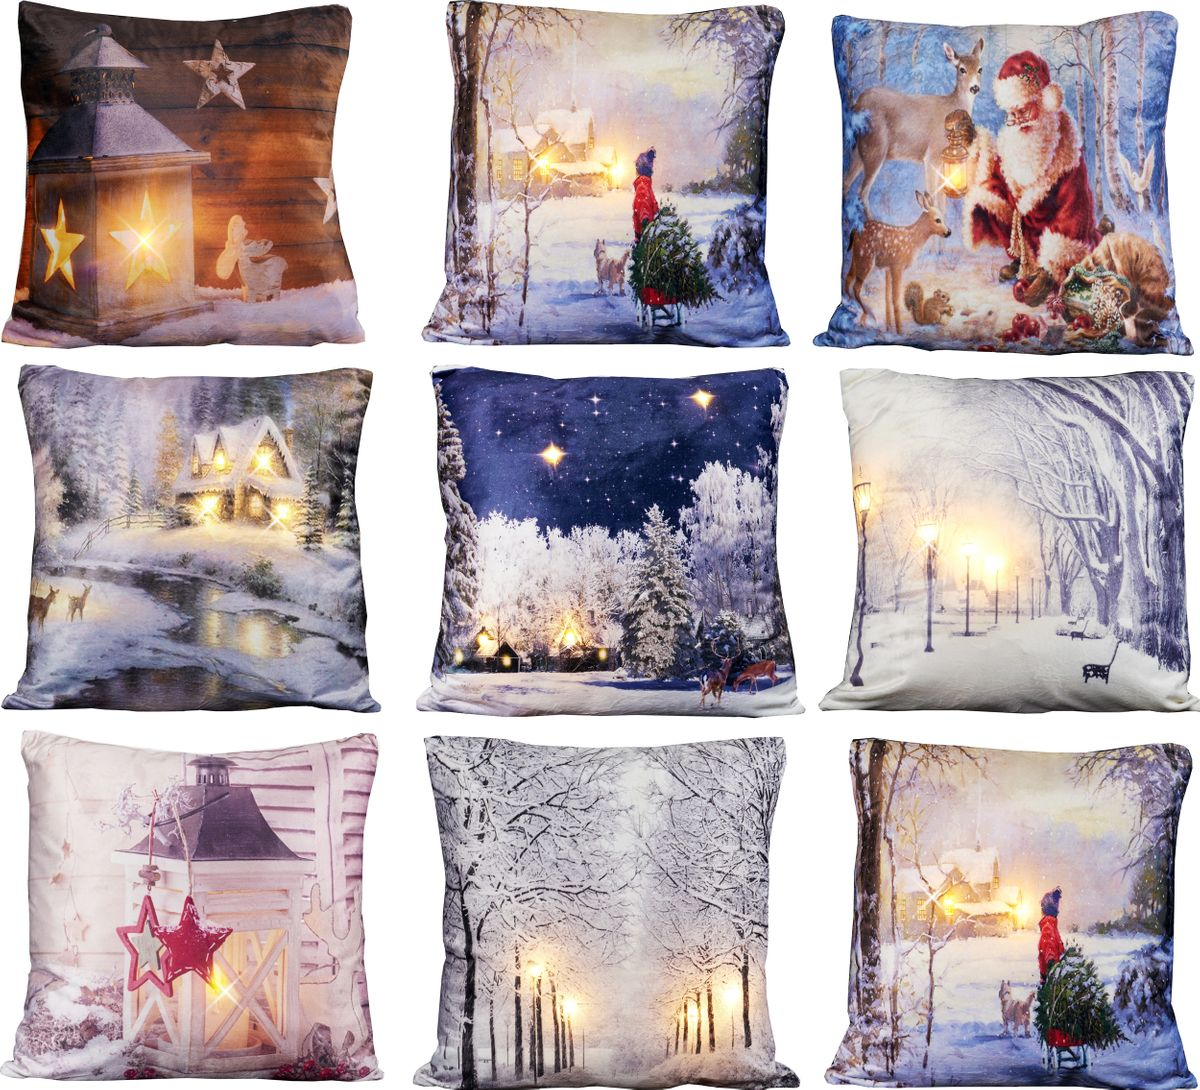 kissen 45x45cm led beleuchtung weihnachten dekokissen wintermotive fotokissen weihnachten 3d. Black Bedroom Furniture Sets. Home Design Ideas